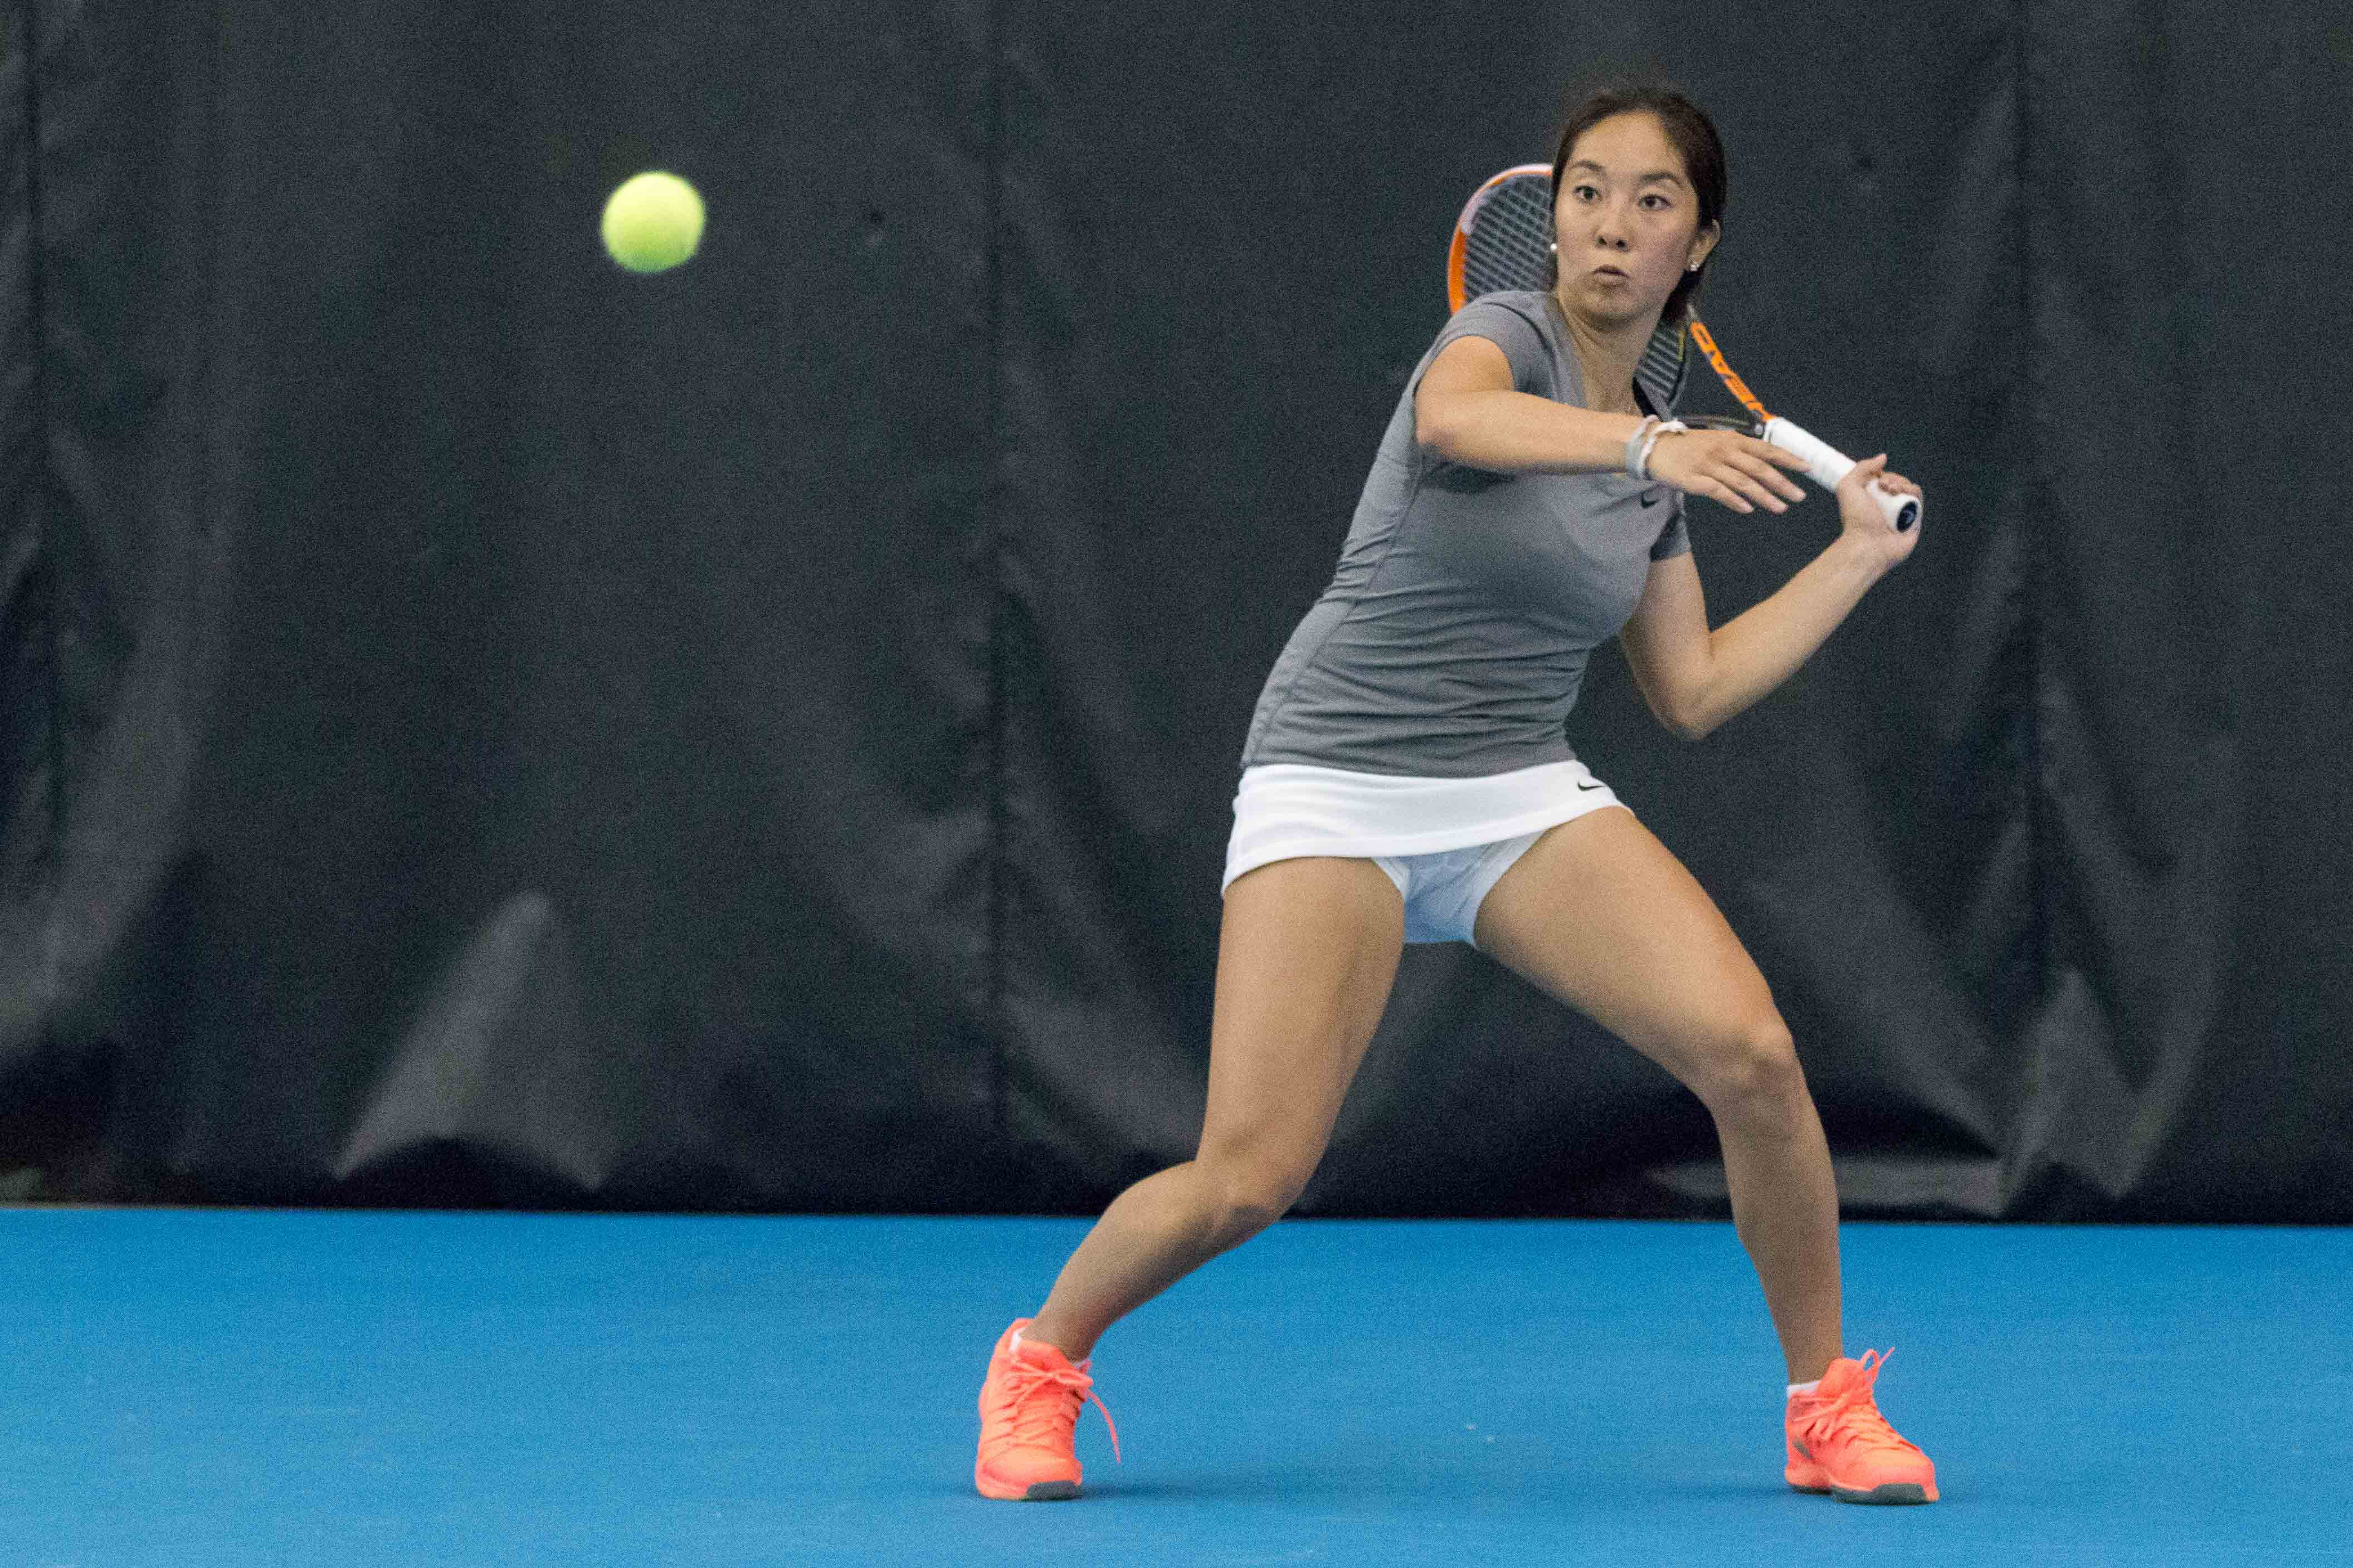 Illinois' Louise Kwong gets ready to return the ball during the match against Nebraska at the Atkin's Tennis Center on Sunday, April 3.